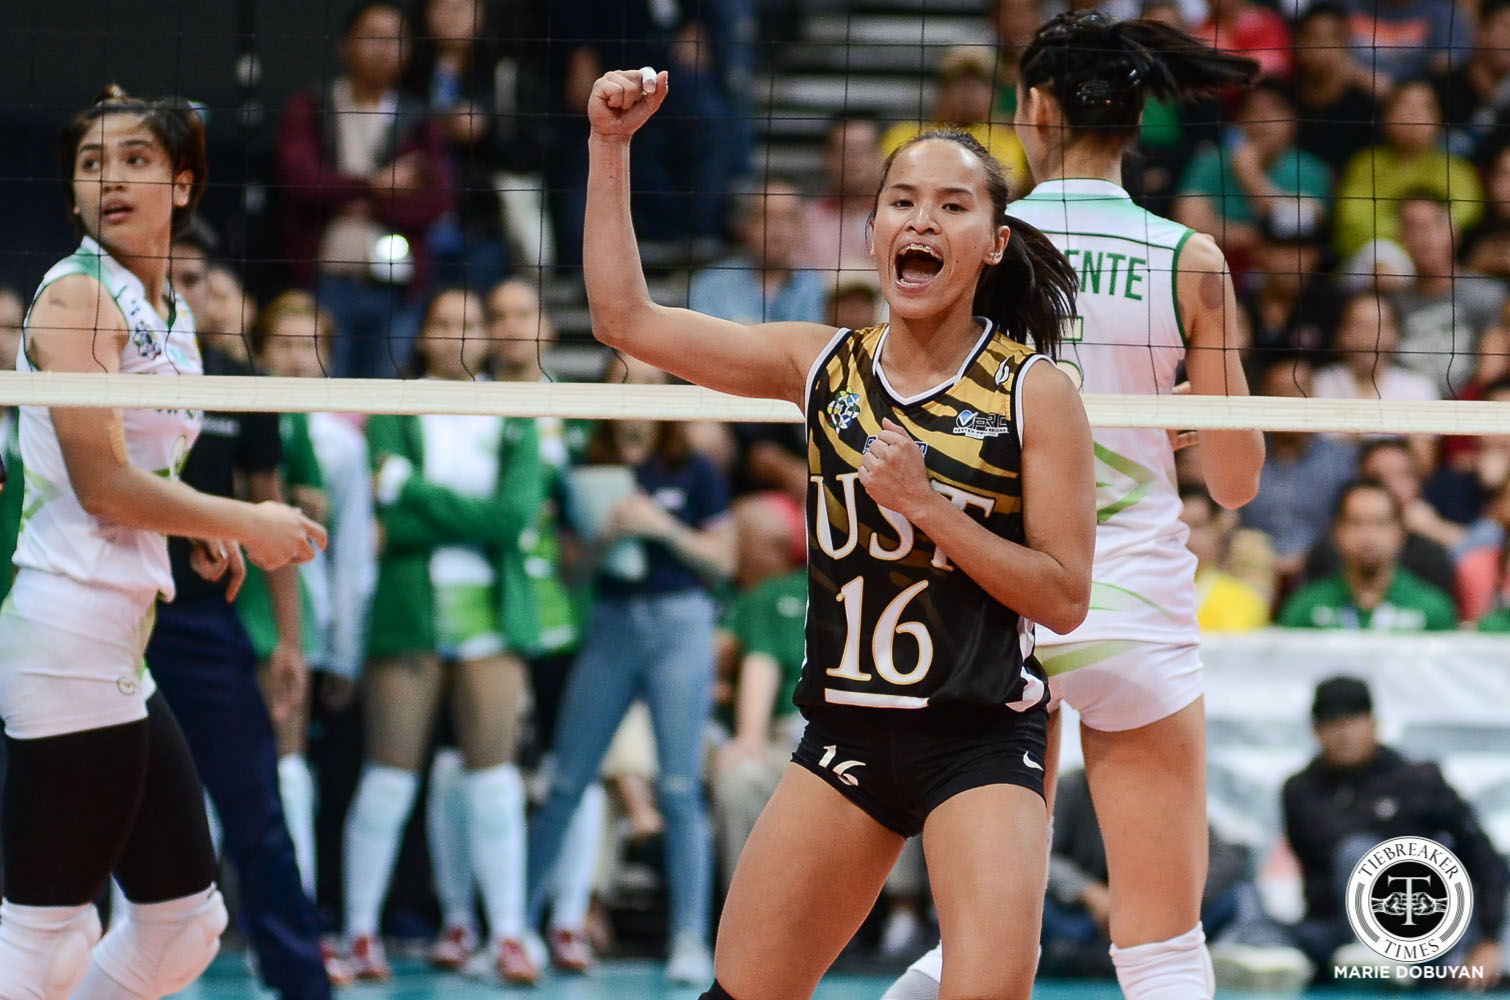 Tiebreaker Times Chooks-to-Go/Collegiate PC POW Cherry Rondina leads UST by example News UAAP UST Volleyball  UST Women's Volleyball UAAP Season 81 Women's Volleyball UAAP Season 81 UAAP Player of the Week Chooks-to-Go Cherry Rondina